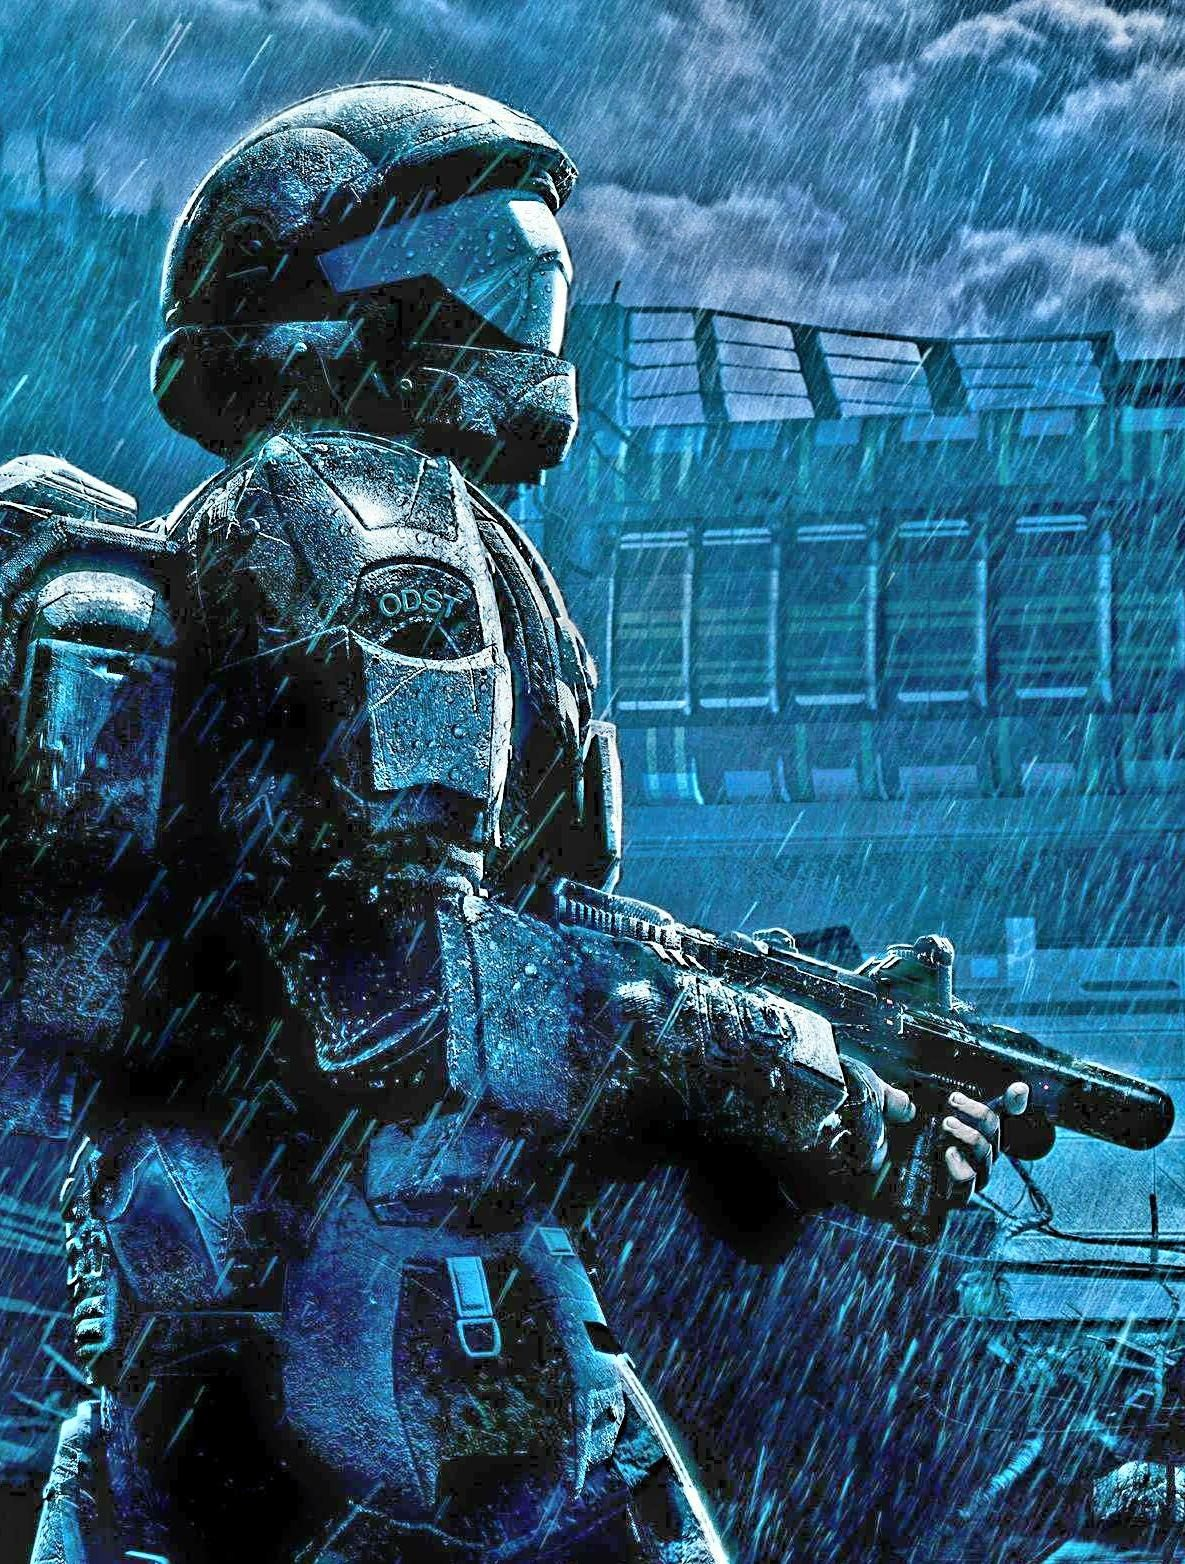 Let S Have Some Love For The Most Underrated Yet Most Aesthetic Halo Halo 3 Odst Halo Game Halo